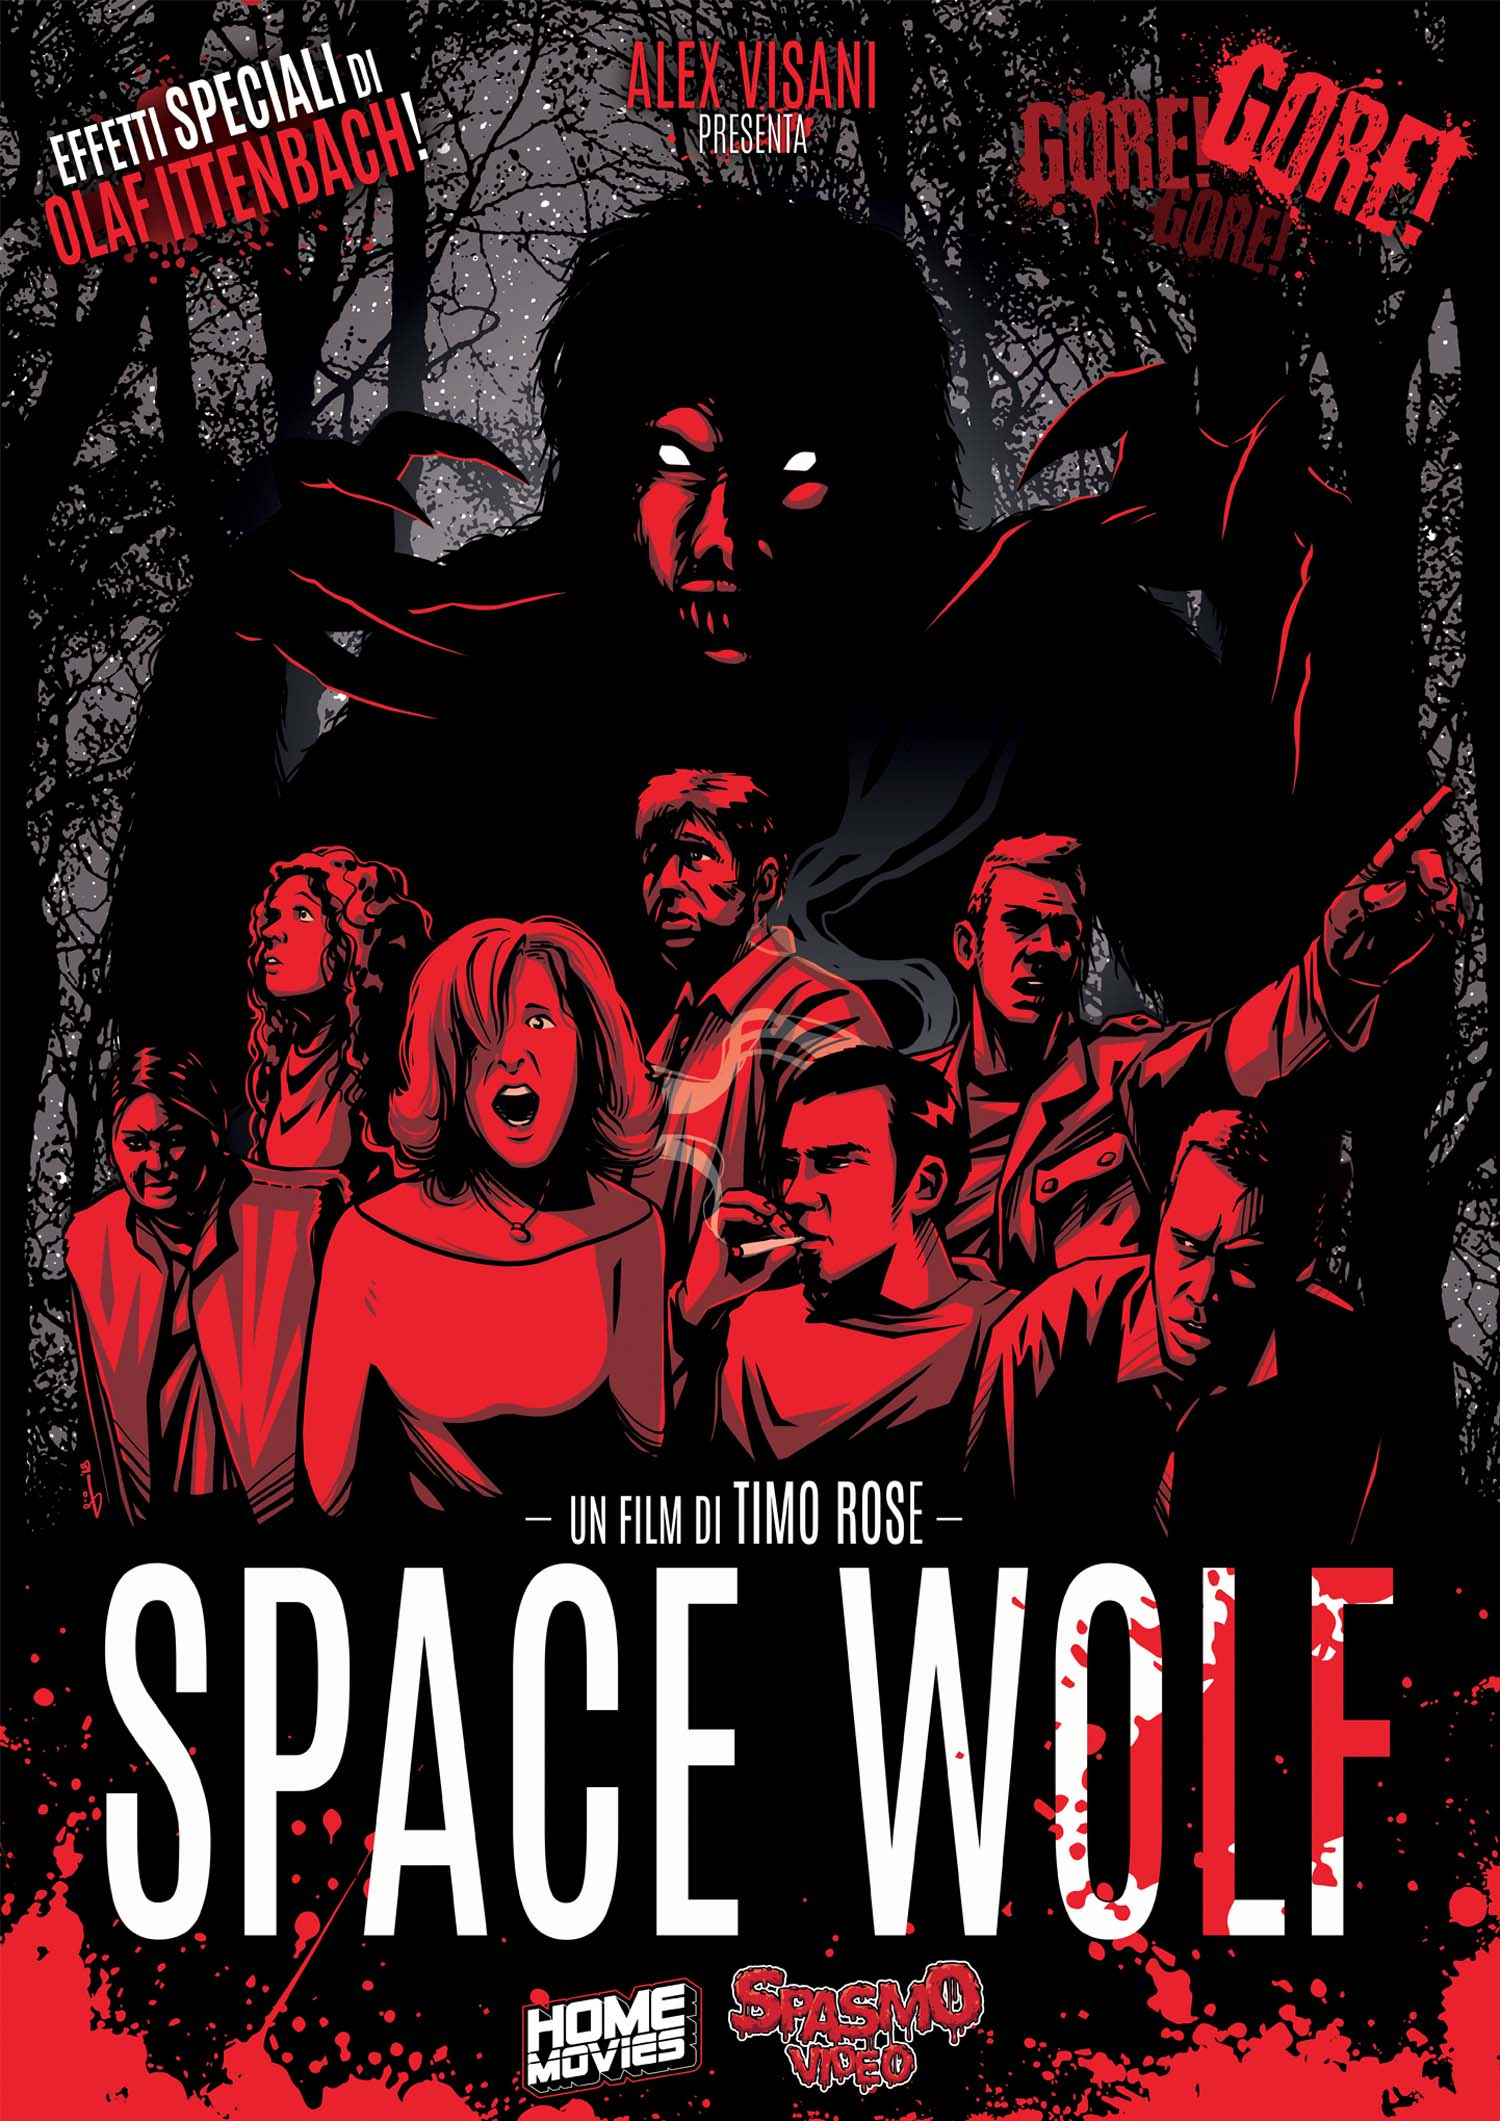 SPACE WOLF (LINGUA ORIGINALE) - AUDIO TEDESCO (DVD)